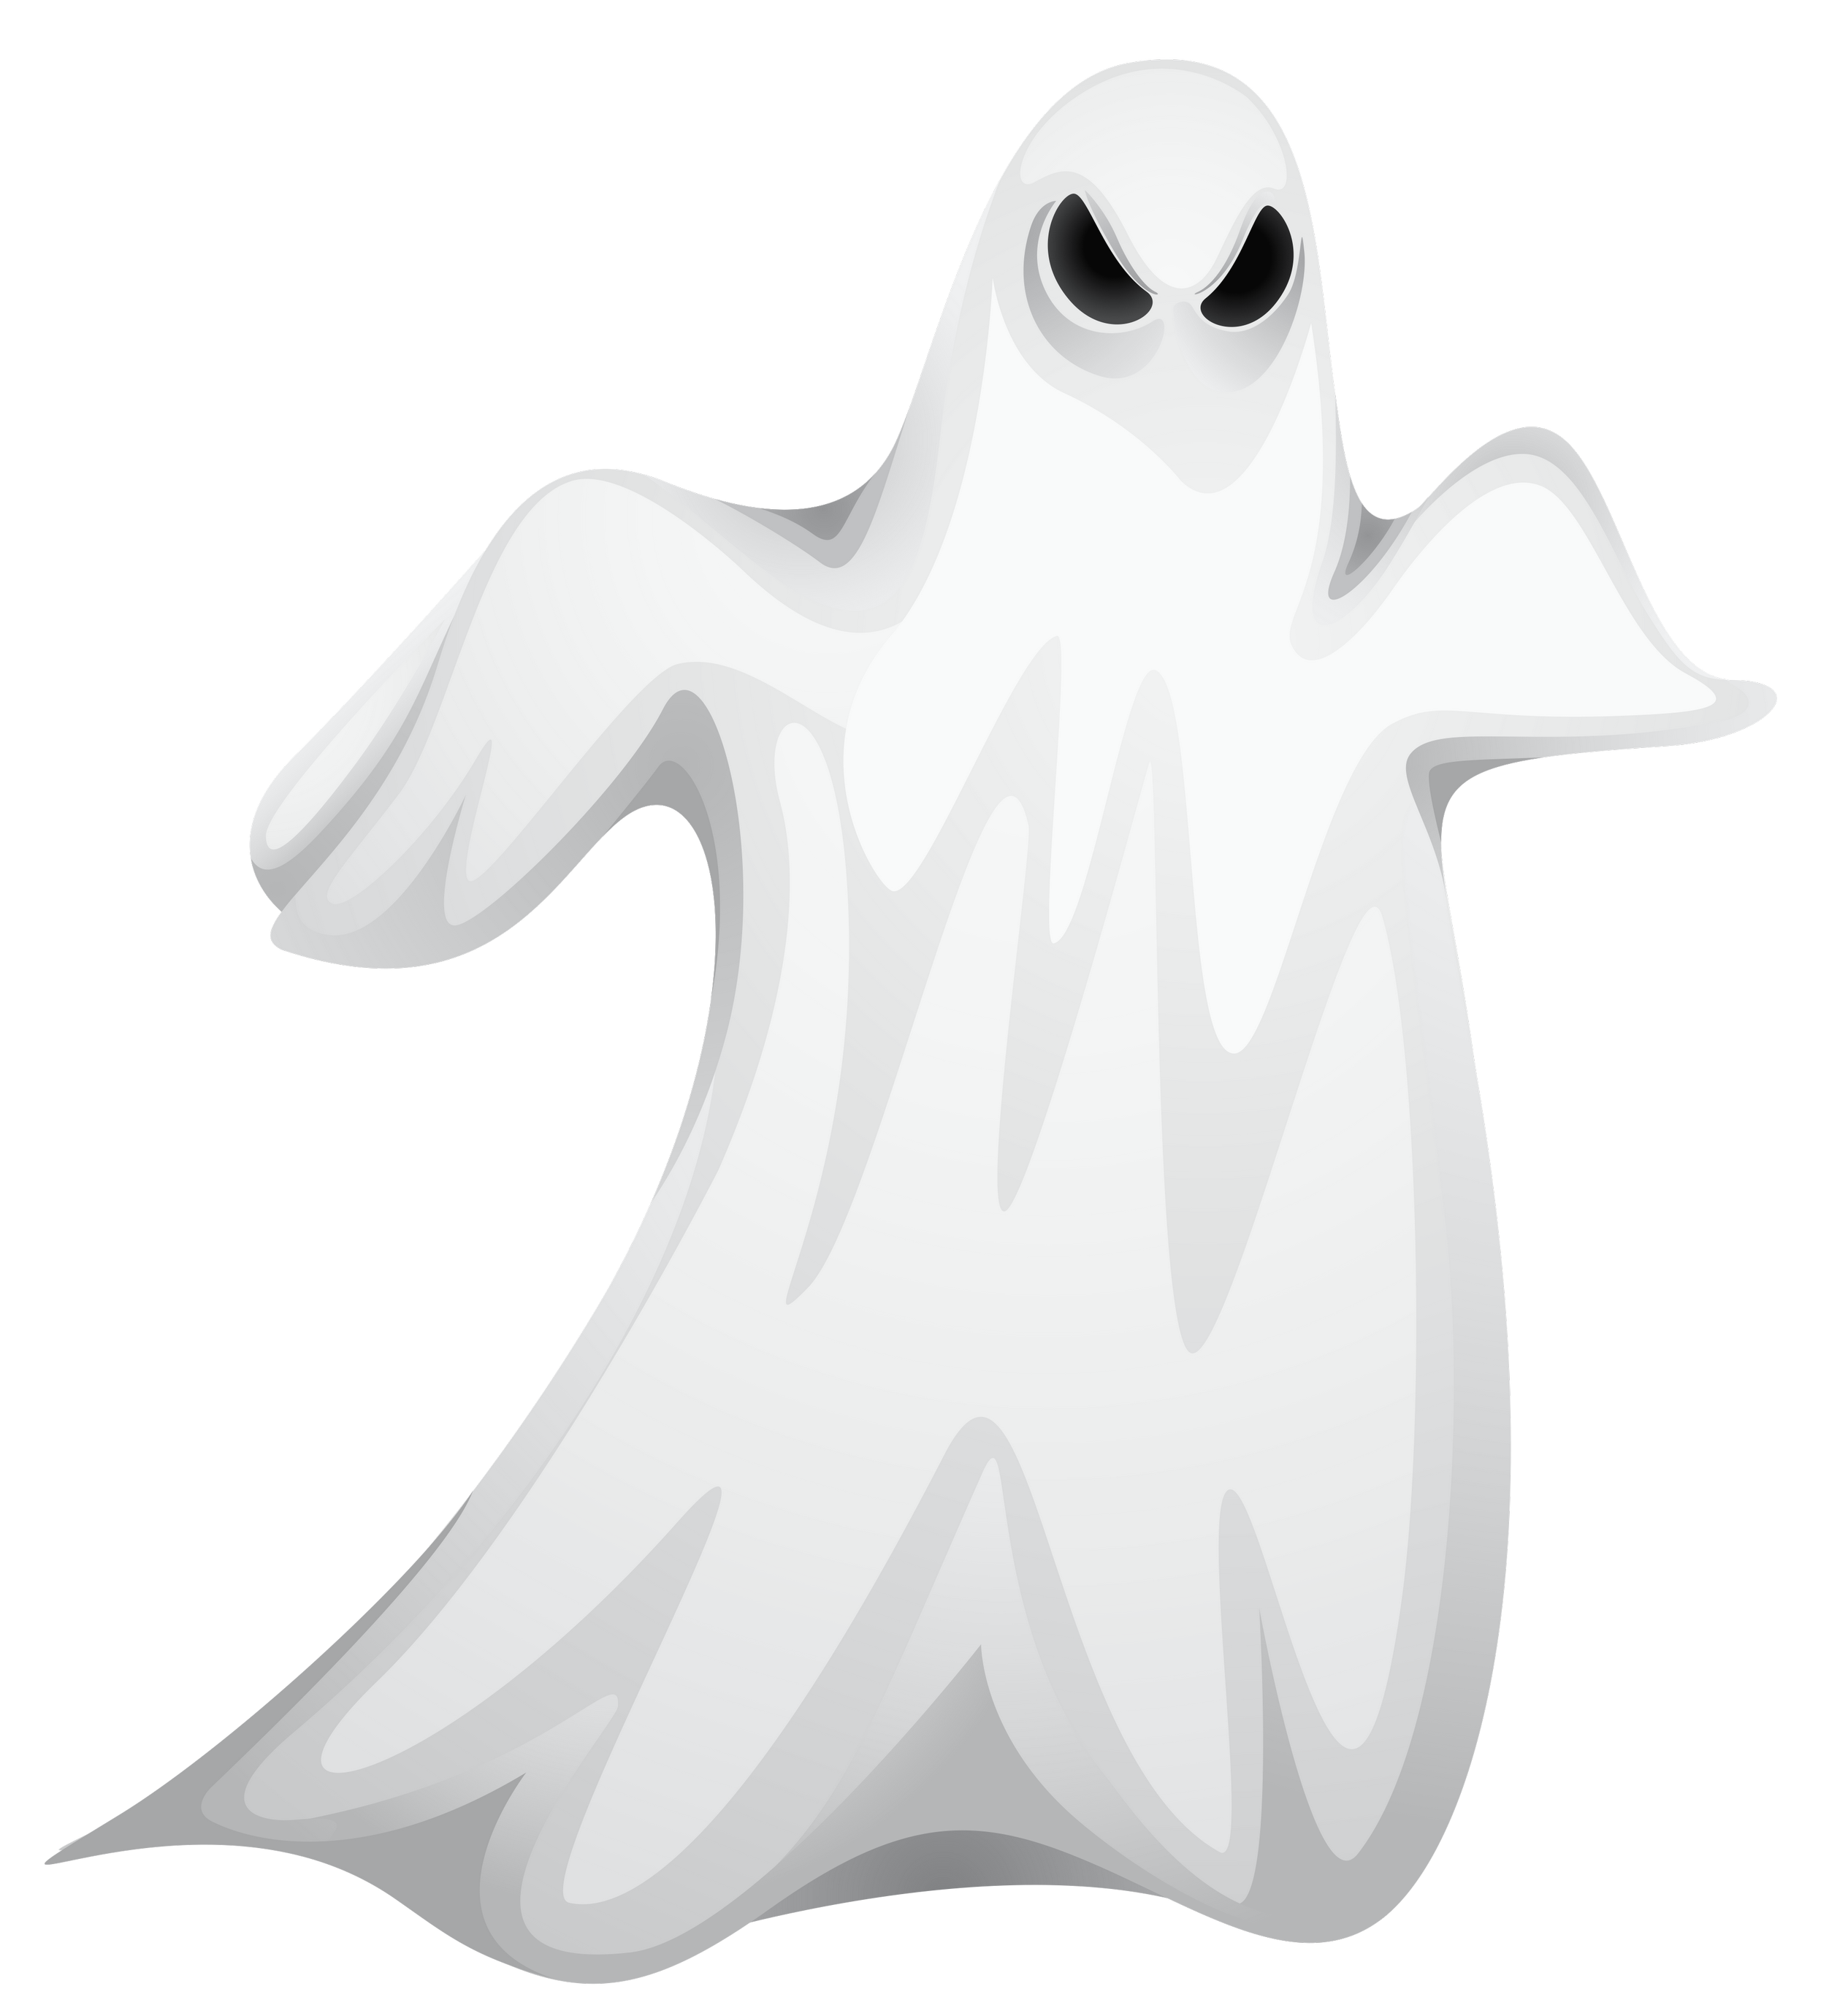 Scary White Ghost 473.75 Kb